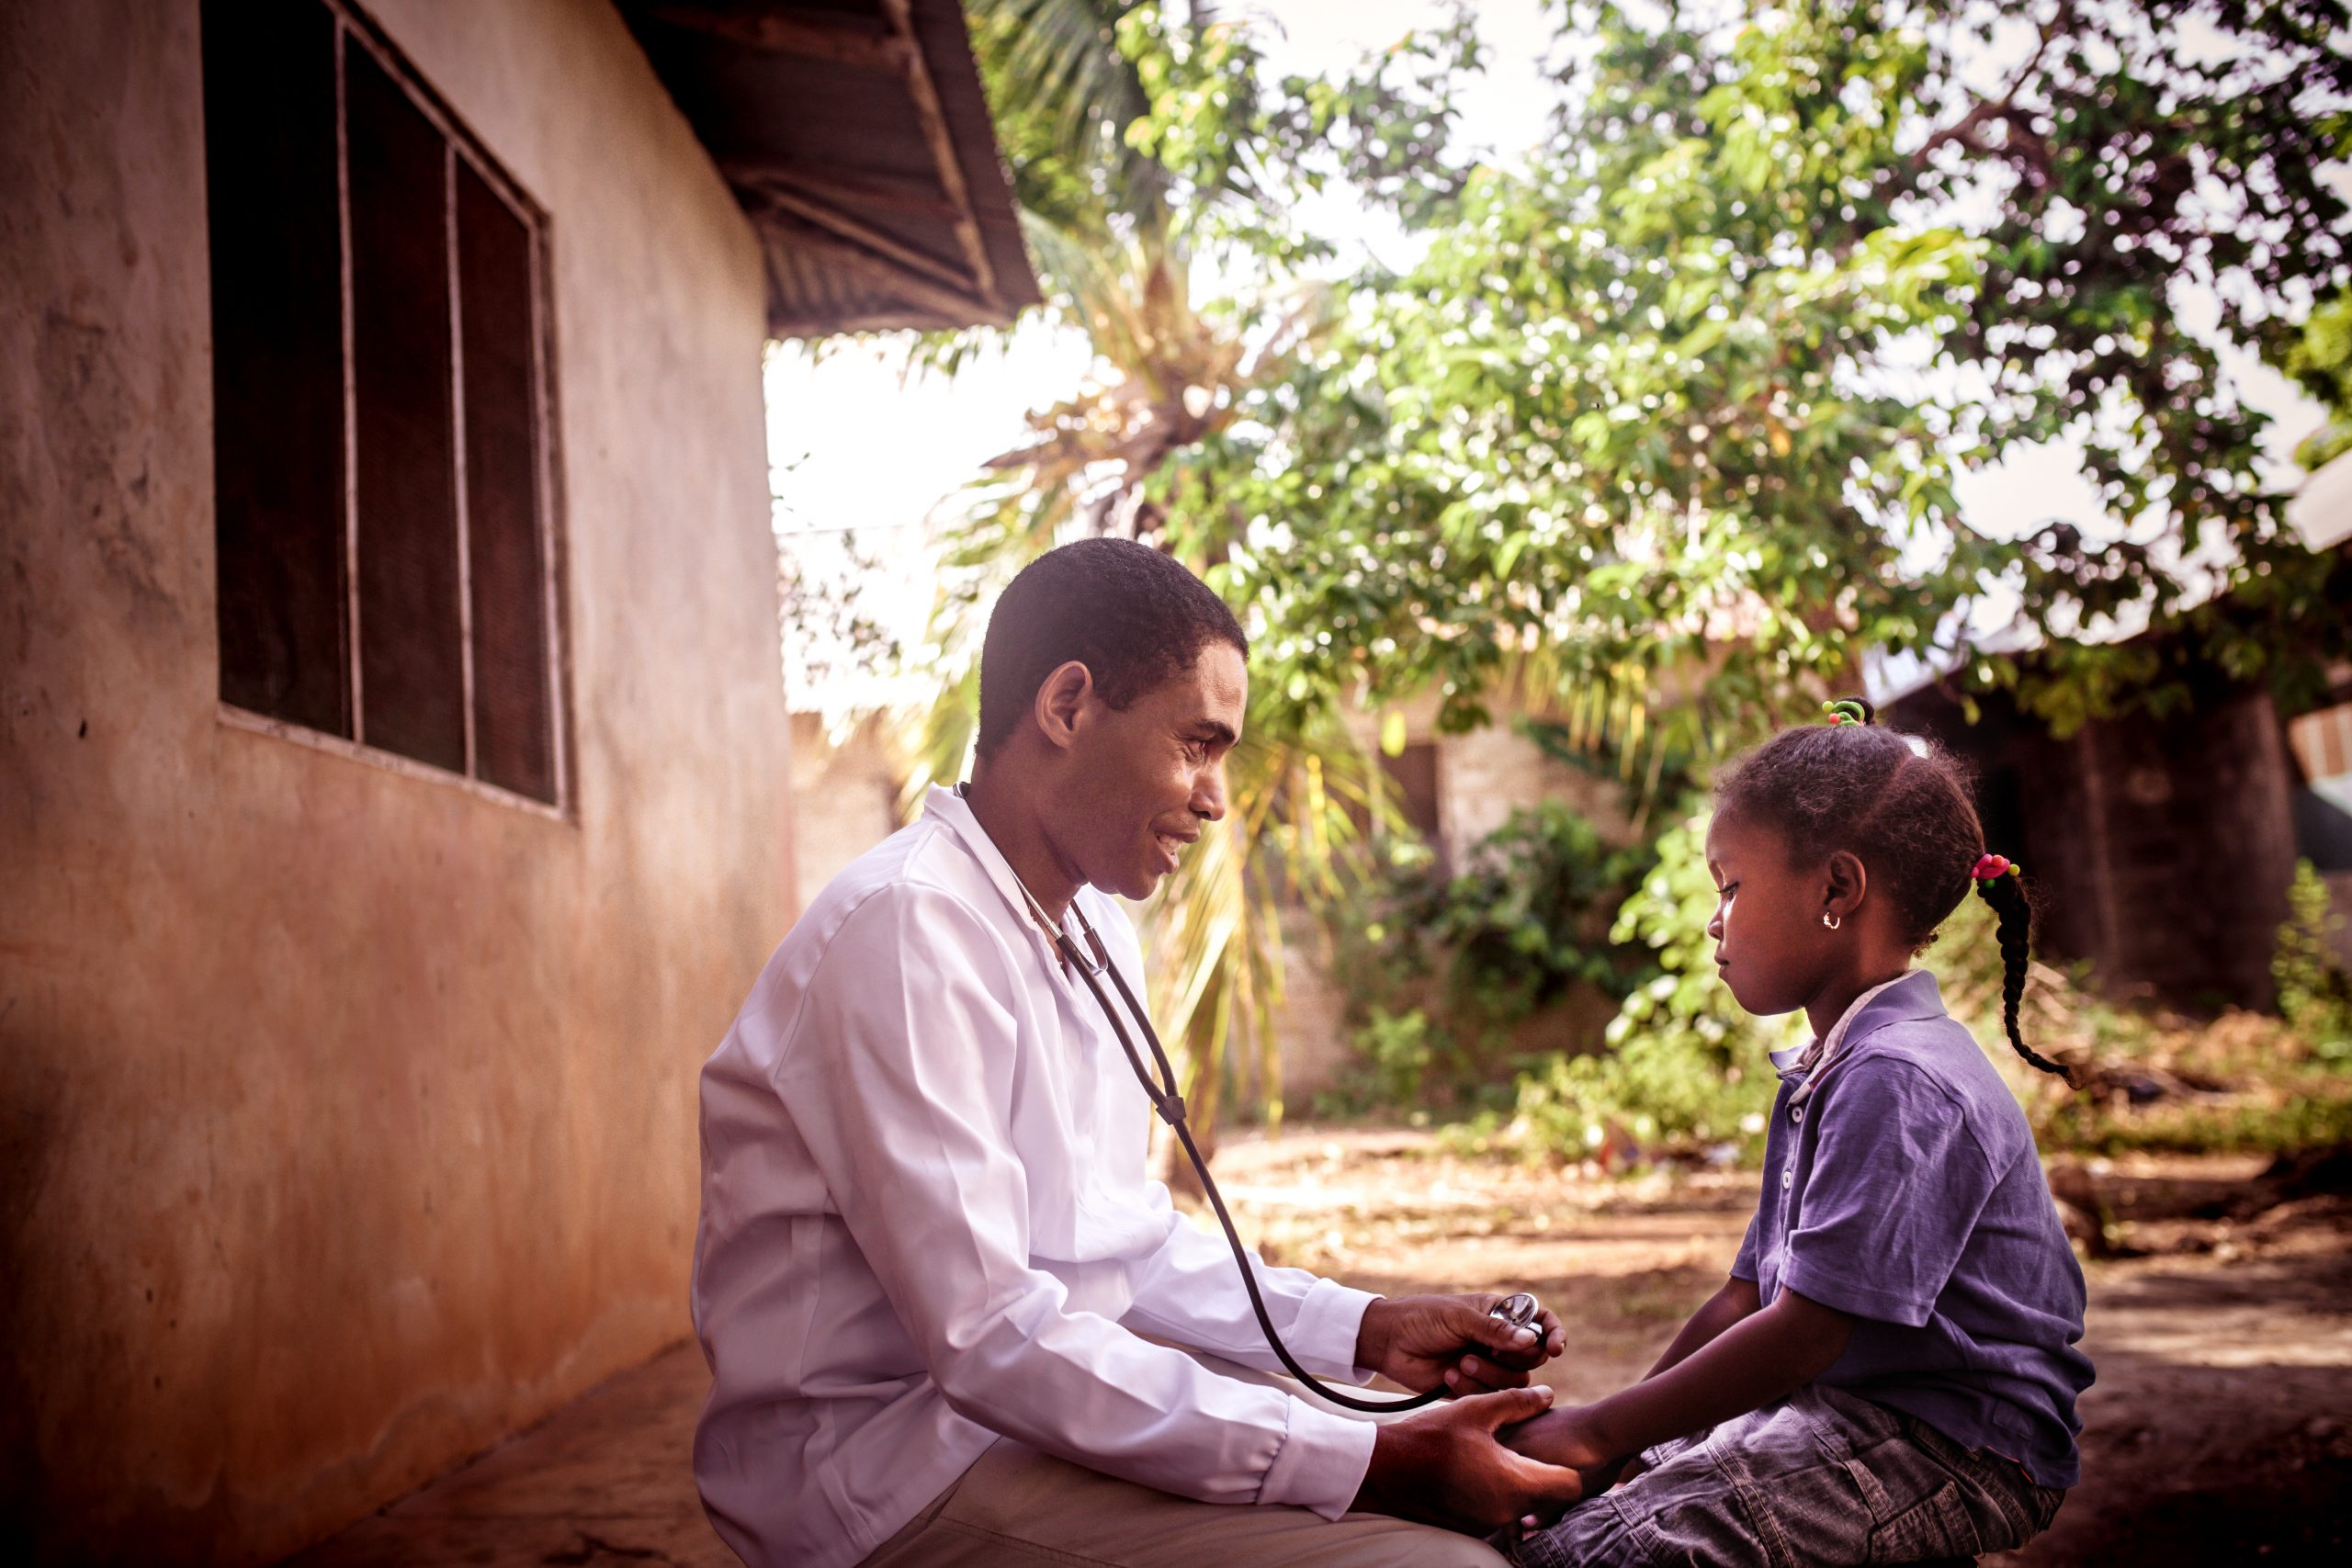 African doctor using stethoscope on a child in a village